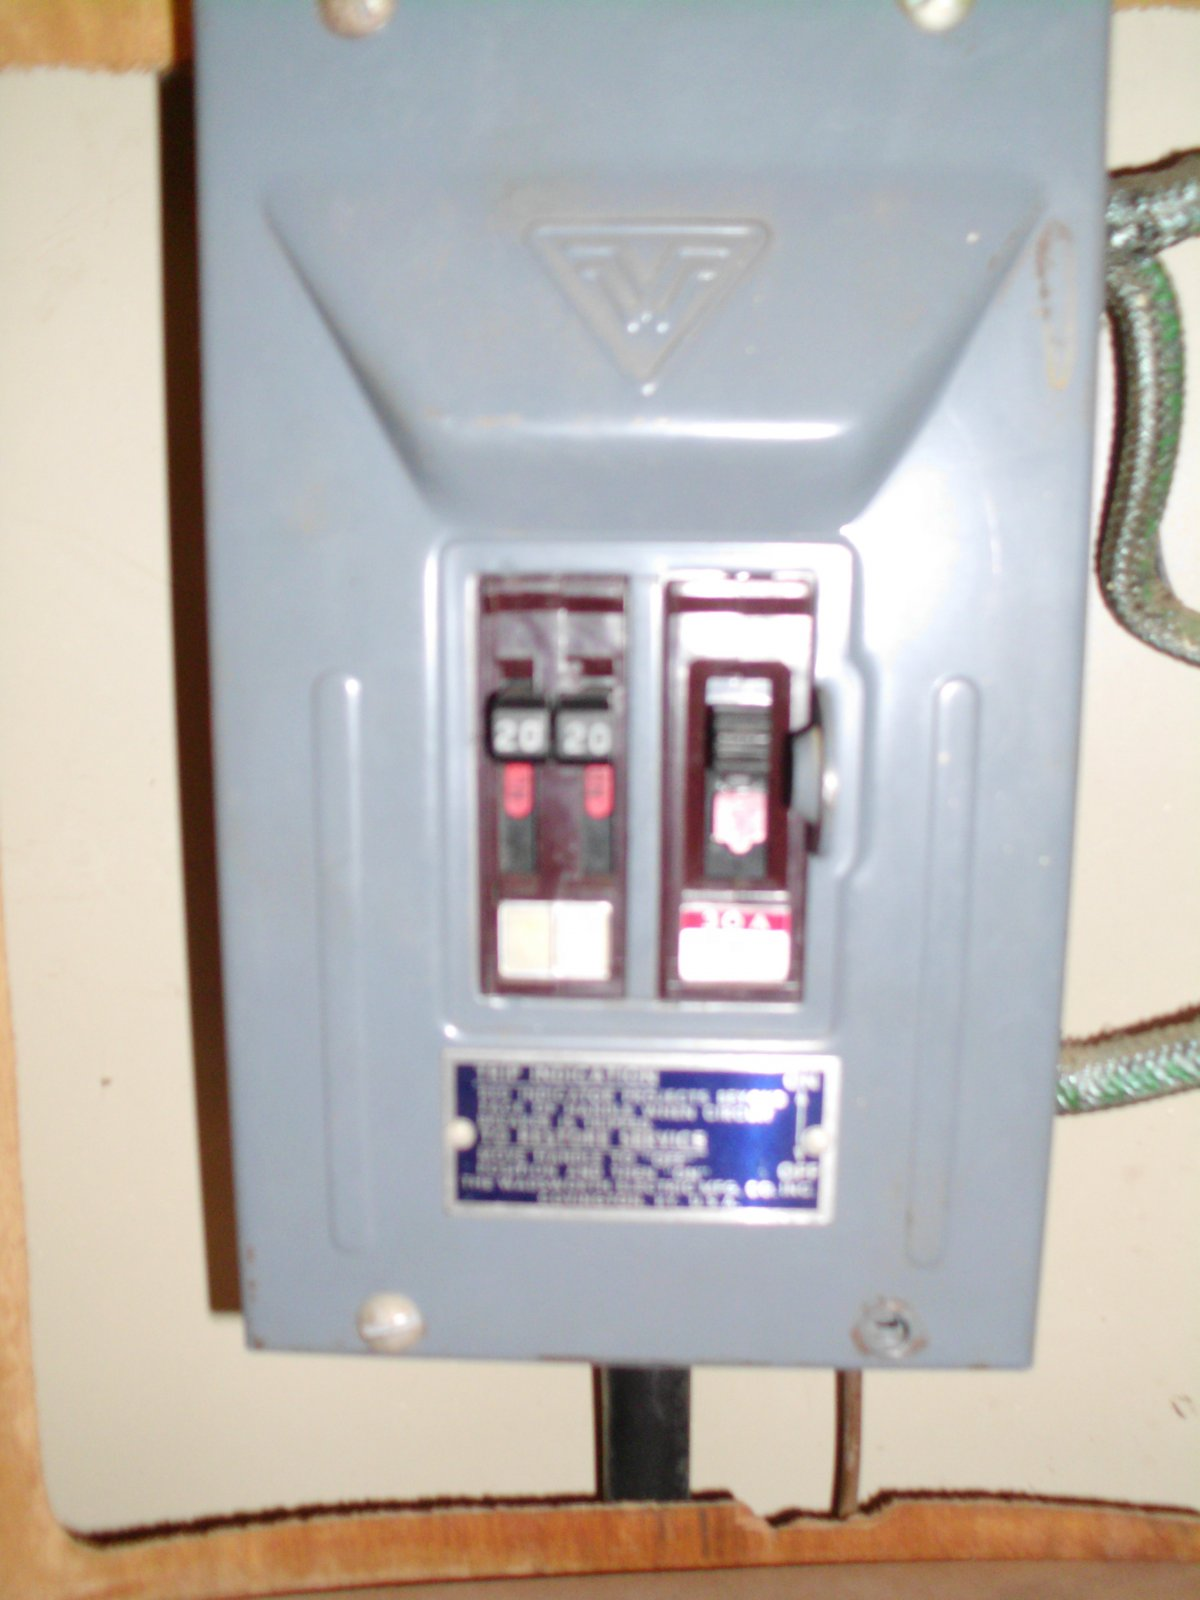 Click image for larger version  Name:breaker box.jpg Views:93 Size:152.3 KB ID:133914